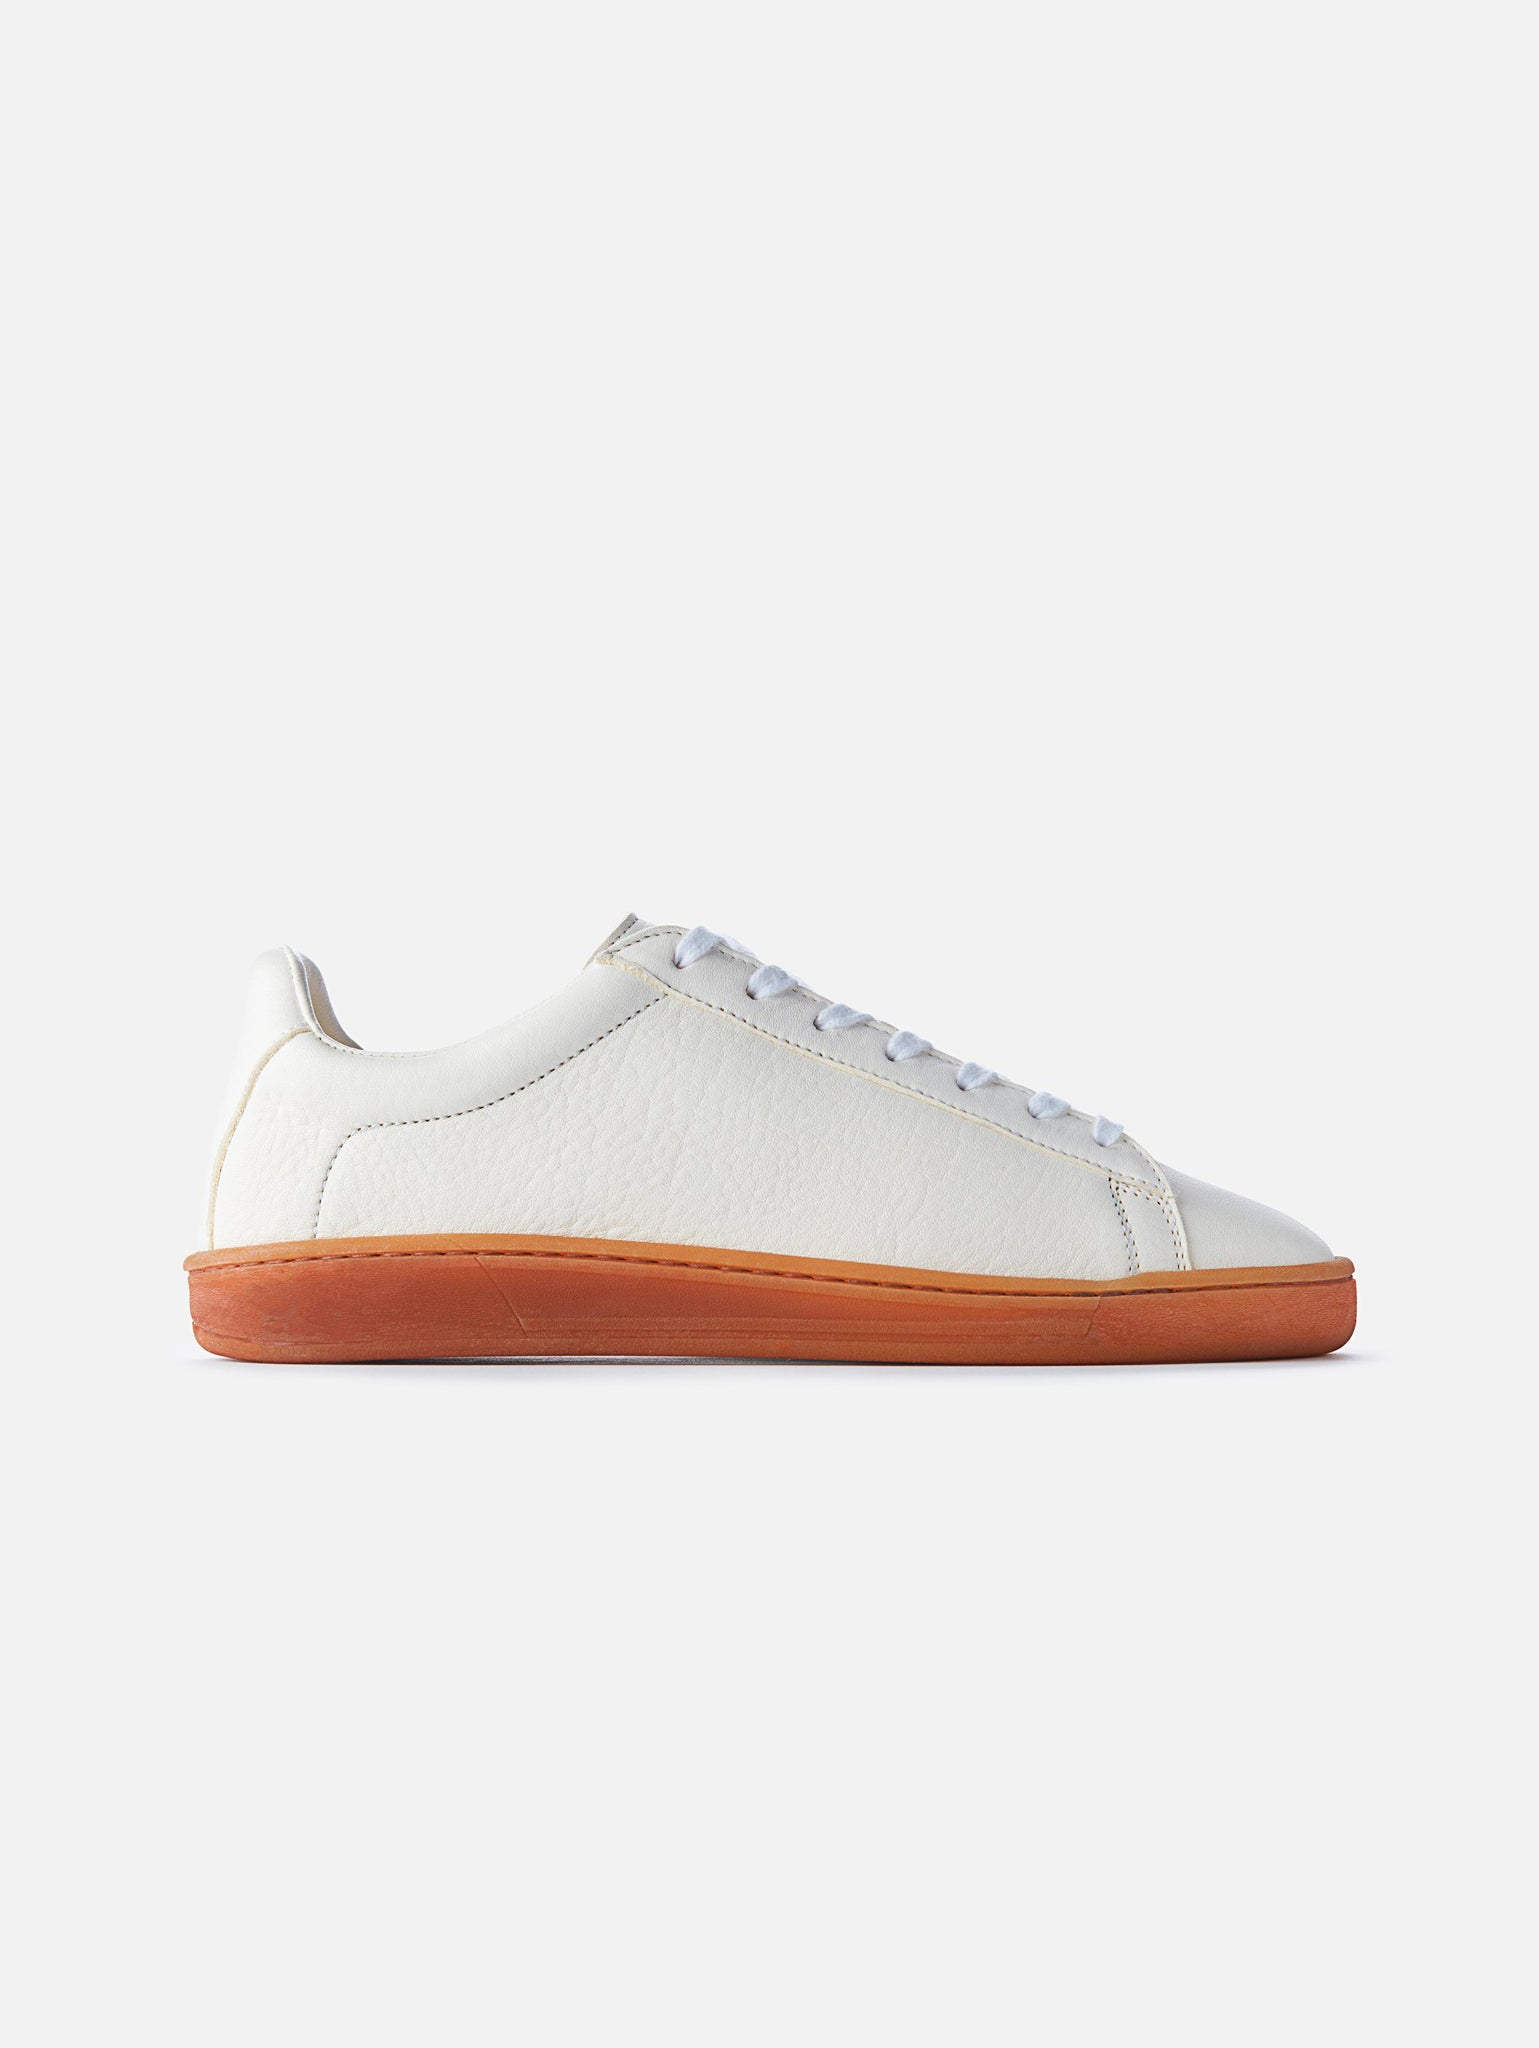 The 1970 - White/Lite Leather Trainerproduct_vendor#product_type